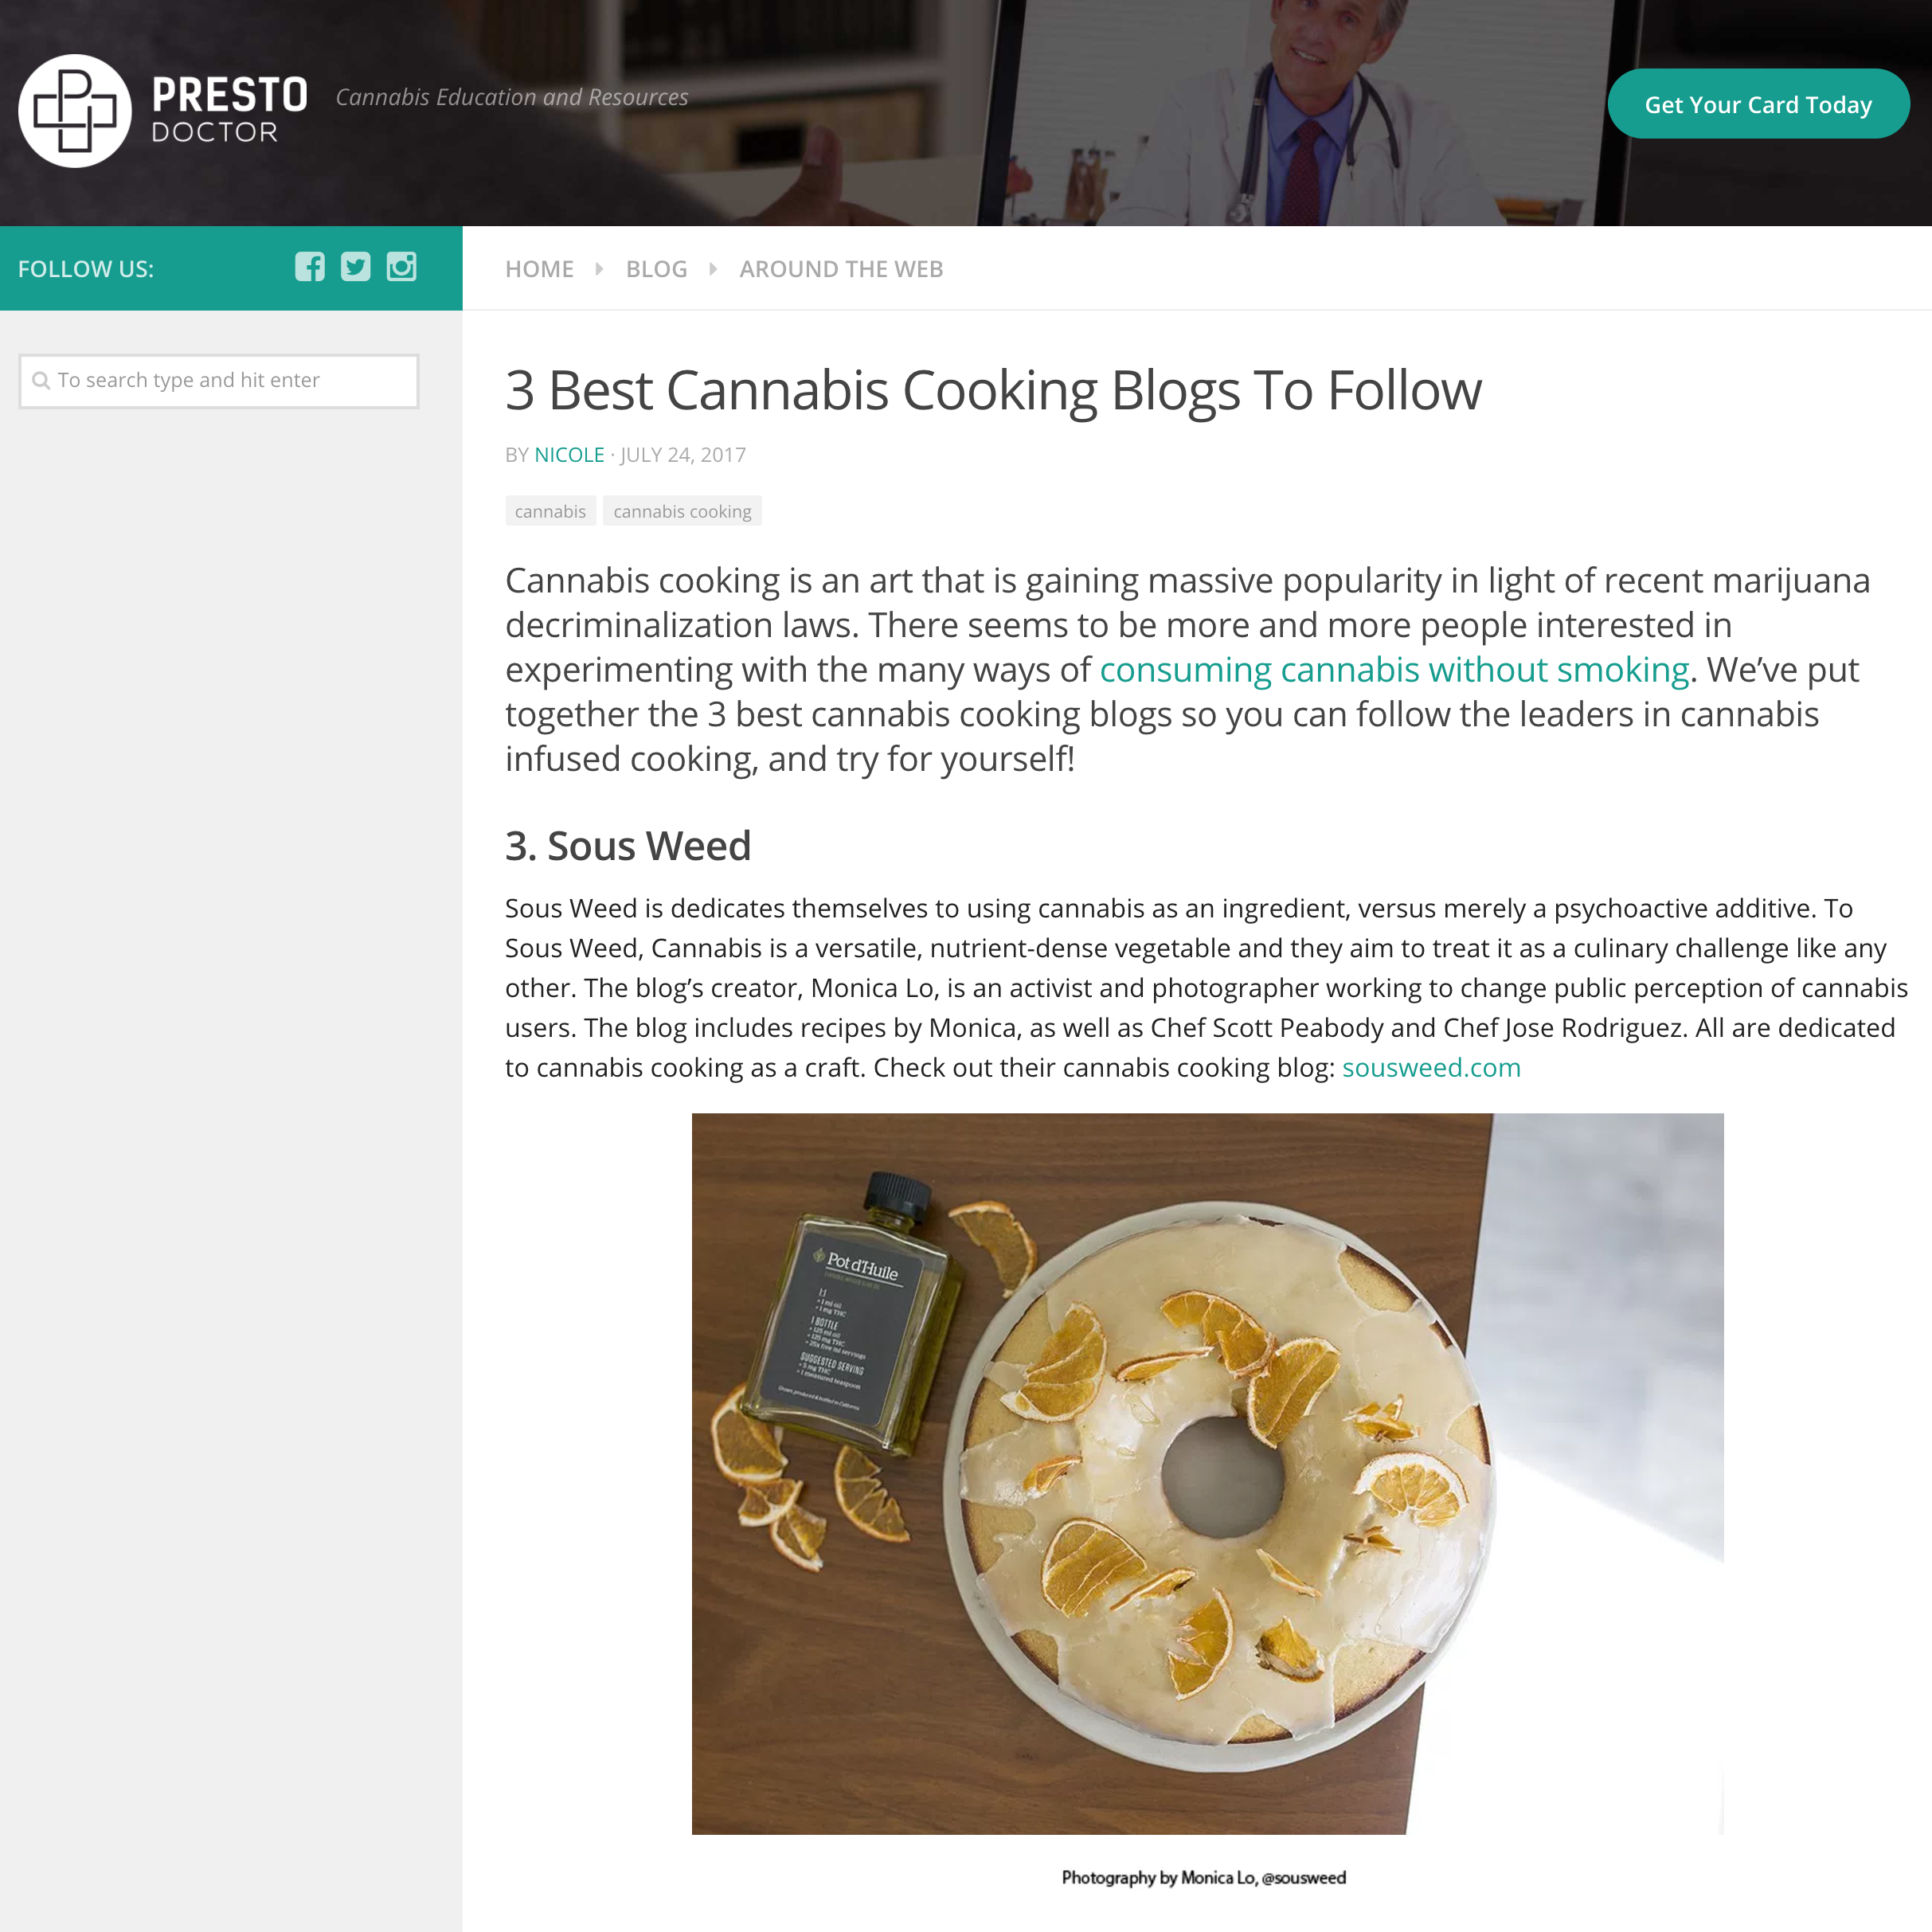 Top 3 Best Cannabis Cooking Blogs